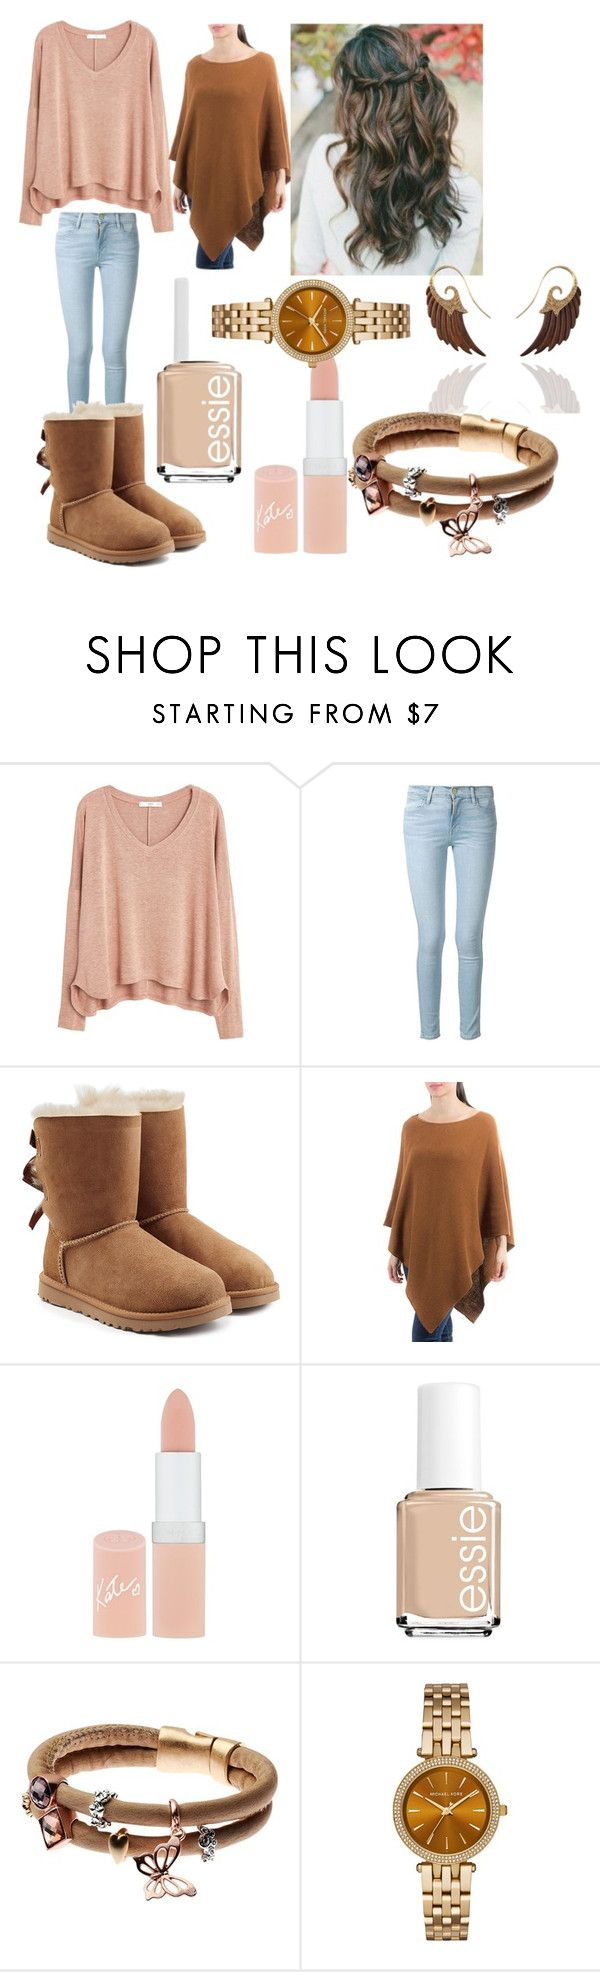 """Casual Winter Outfit"" by melissa-h-14 ❤ liked on Polyvore featuring MANGO, Frame Denim, UGG Australia, NOVICA, Rimmel, Essie, Adele Marie, Michael …"